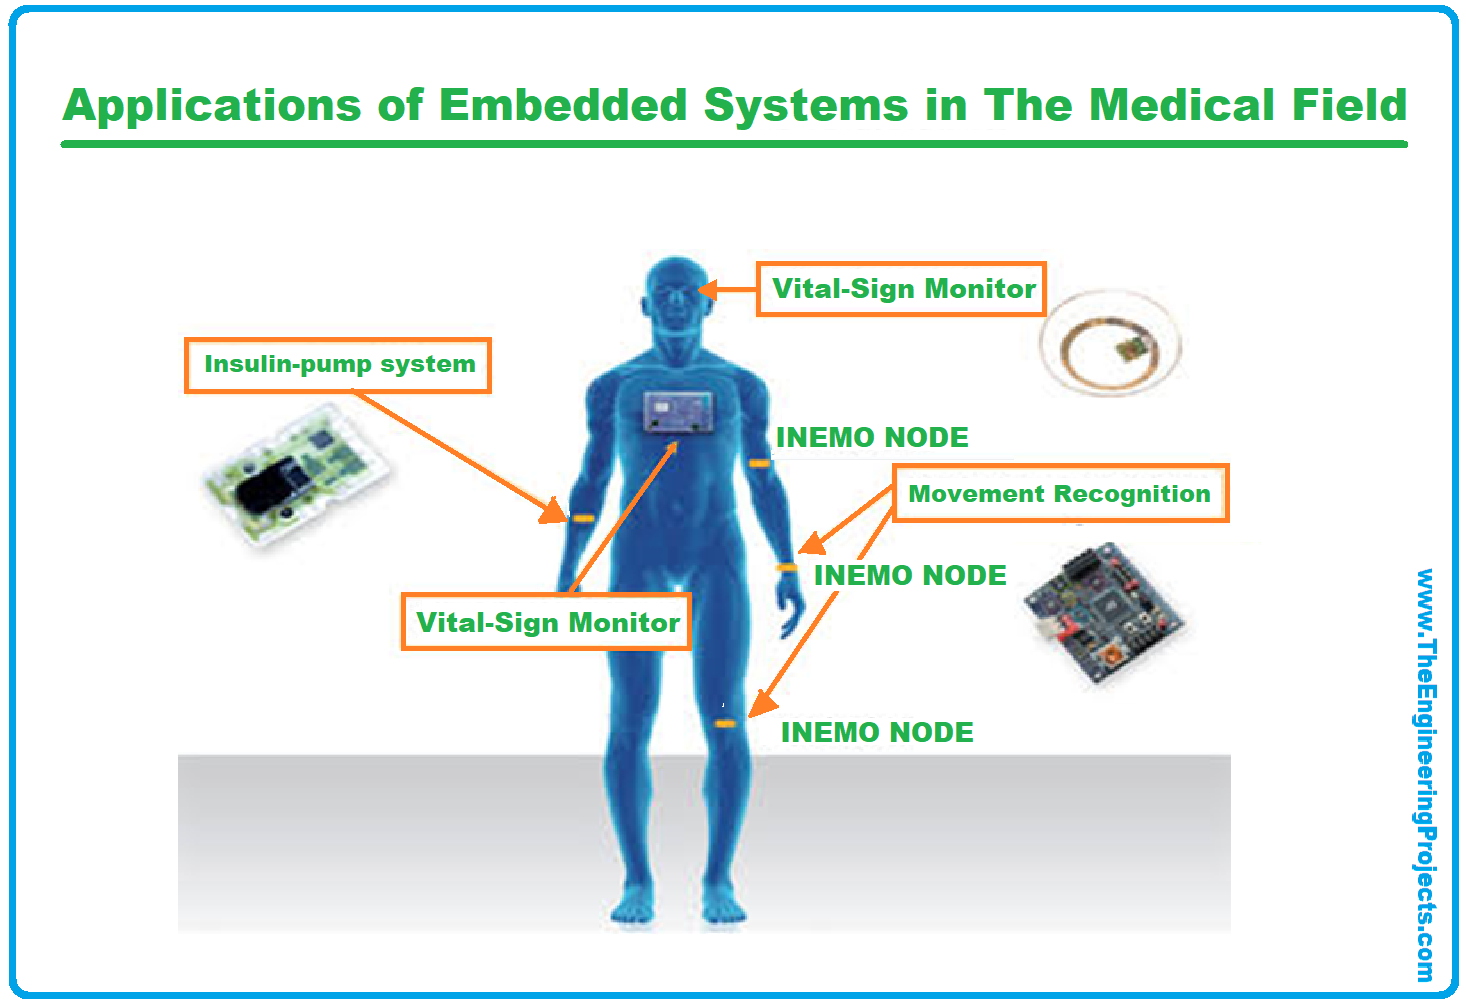 Applications of Embedded Systems, Applications of Embedded Systems in the Medical Field, Application of embedded systems in the Automotive Industry, Application of Embedded Systems in Telecommunications, Applications of Embedded Systems in Motes, Applications of Embedded Systems in Consumer Electronics, Applications of Embedded Systems in Avionics, Applications of Embedded Systems in Safety-Critical Systems, Application of Embedded Systems in Smart Cards, Applications of Embedded Systems in Robotics, Applications of Embedded Systems in Banking